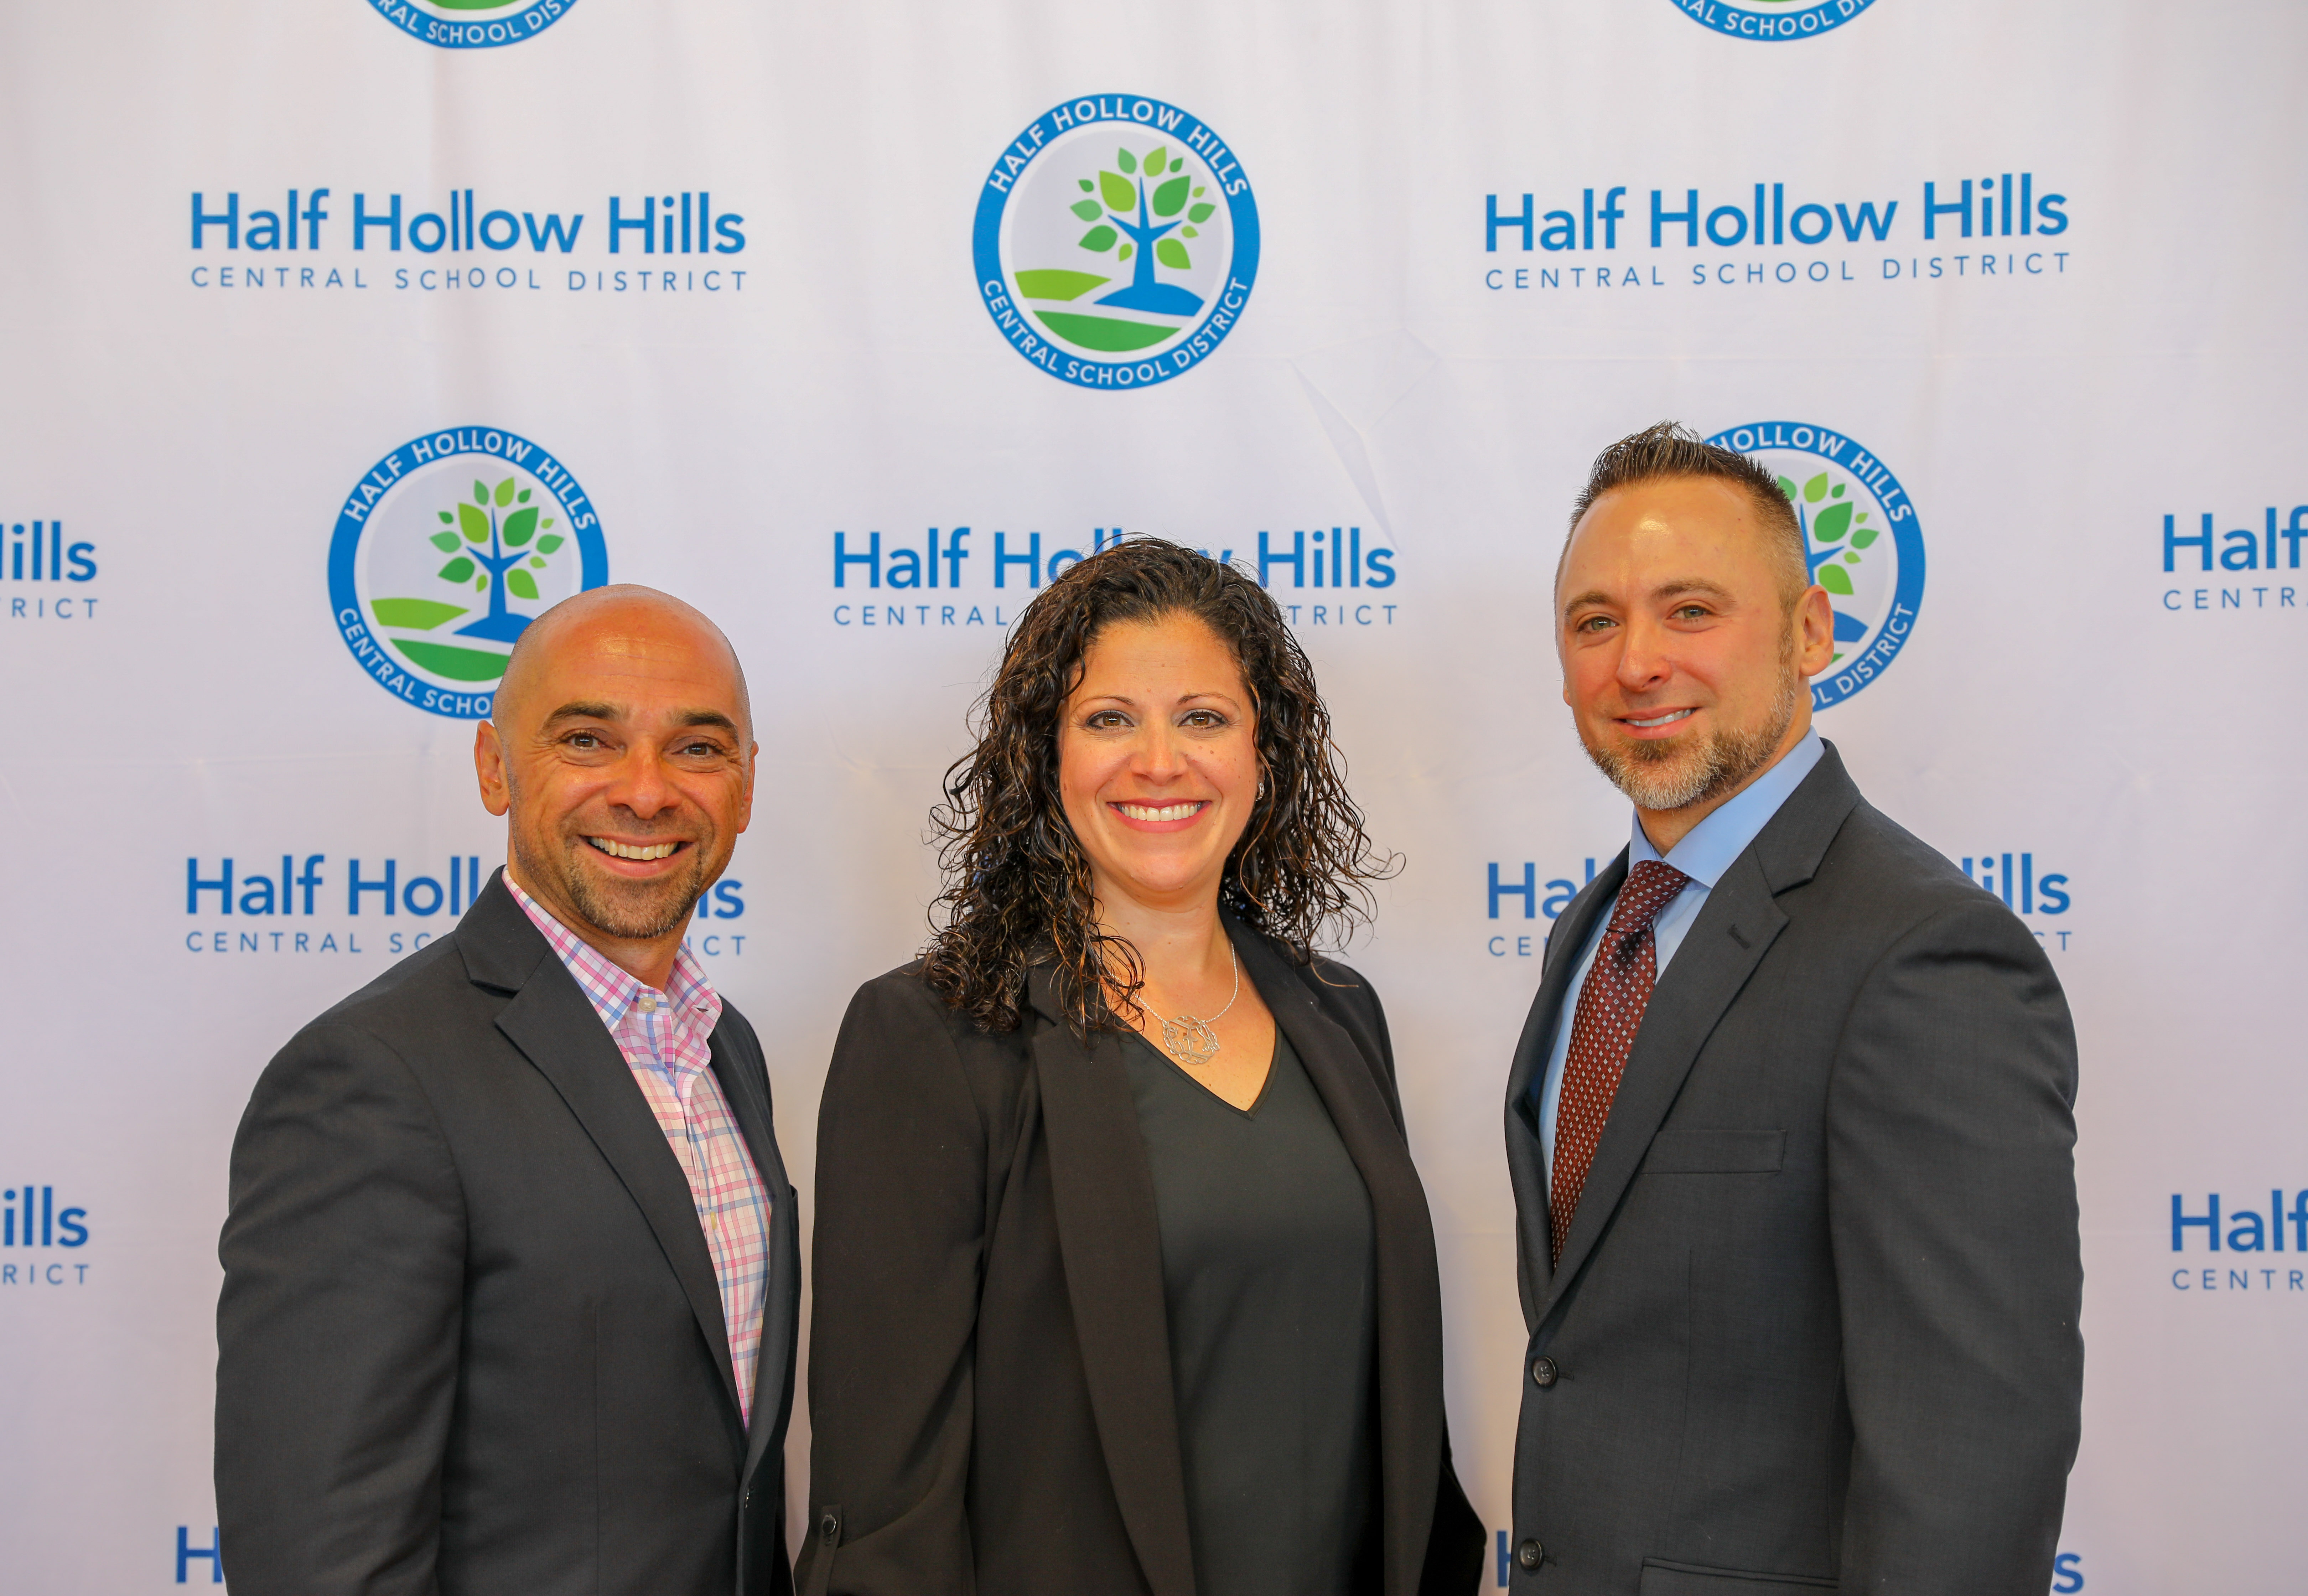 Half Hollow Hills Welcomes New Administrators To Pupil Personnel Department